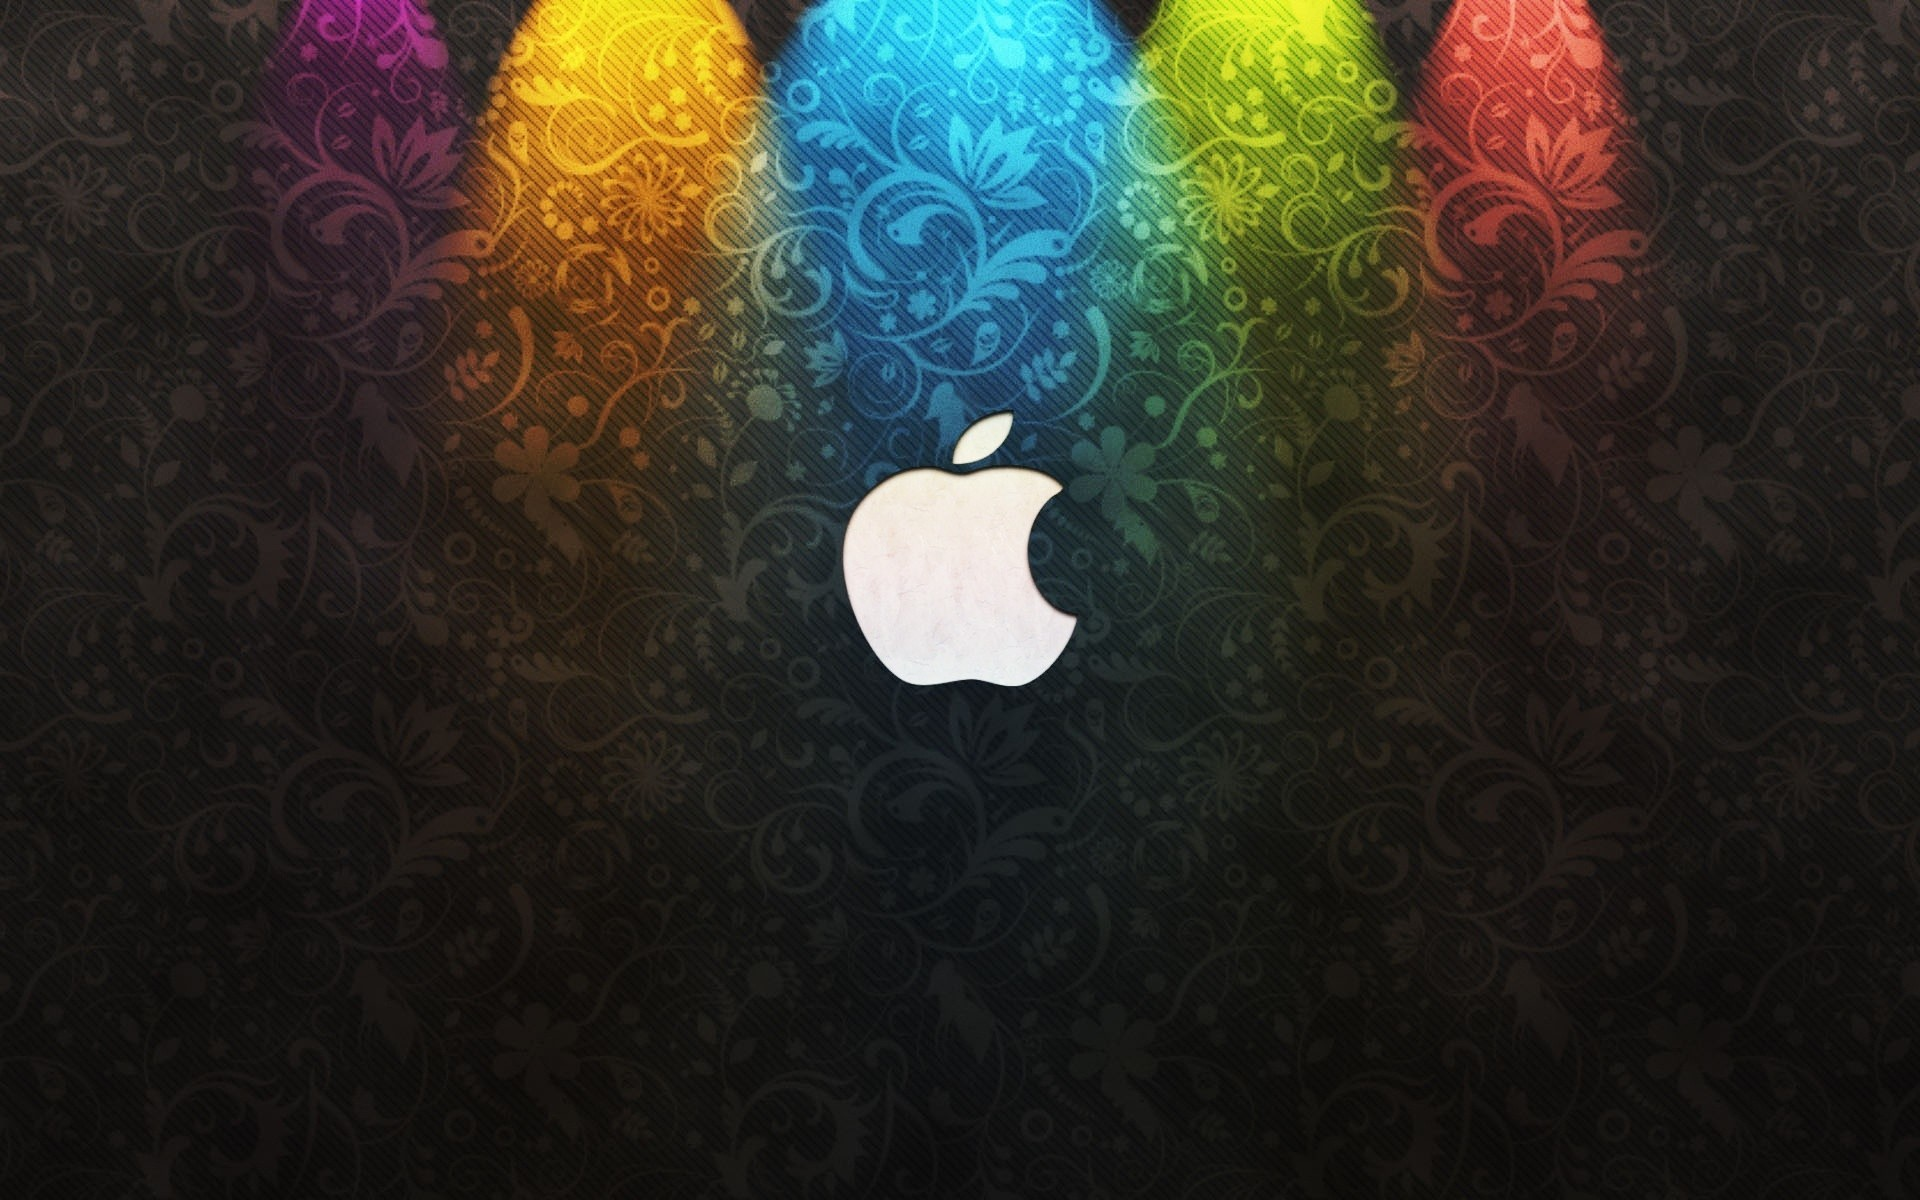 lights apple inc design HD Wallpaper